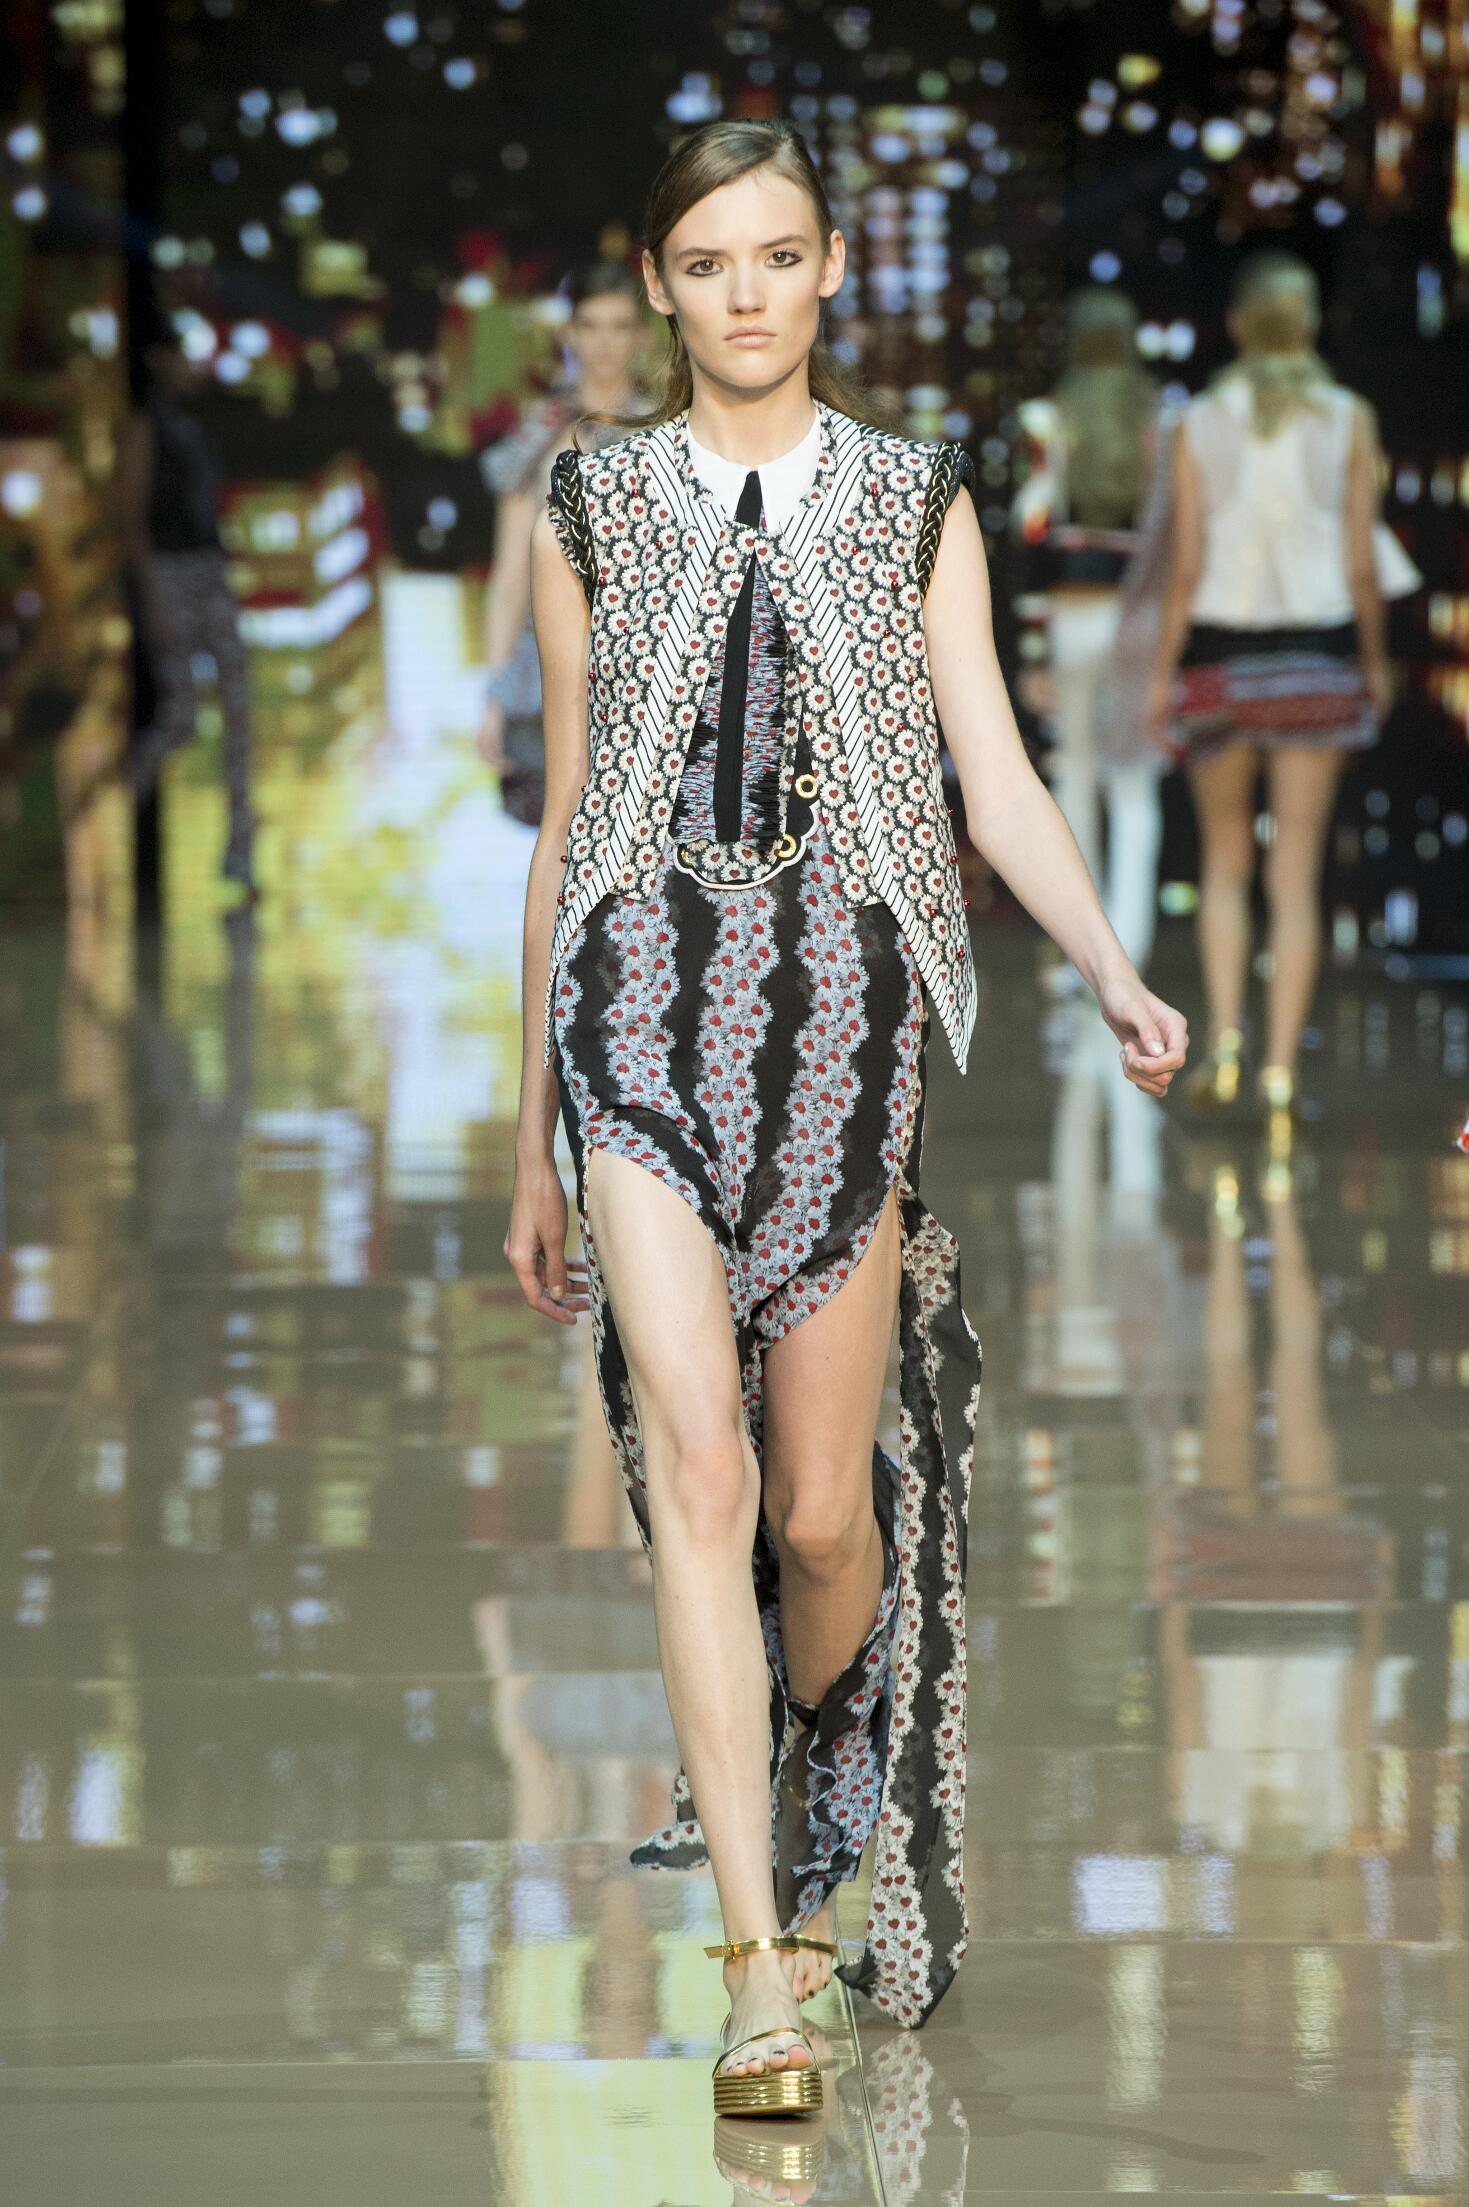 Discussion on this topic: Just Cavalli SpringSummer 2015 Collection – Milan , just-cavalli-springsummer-2015-collection-milan/